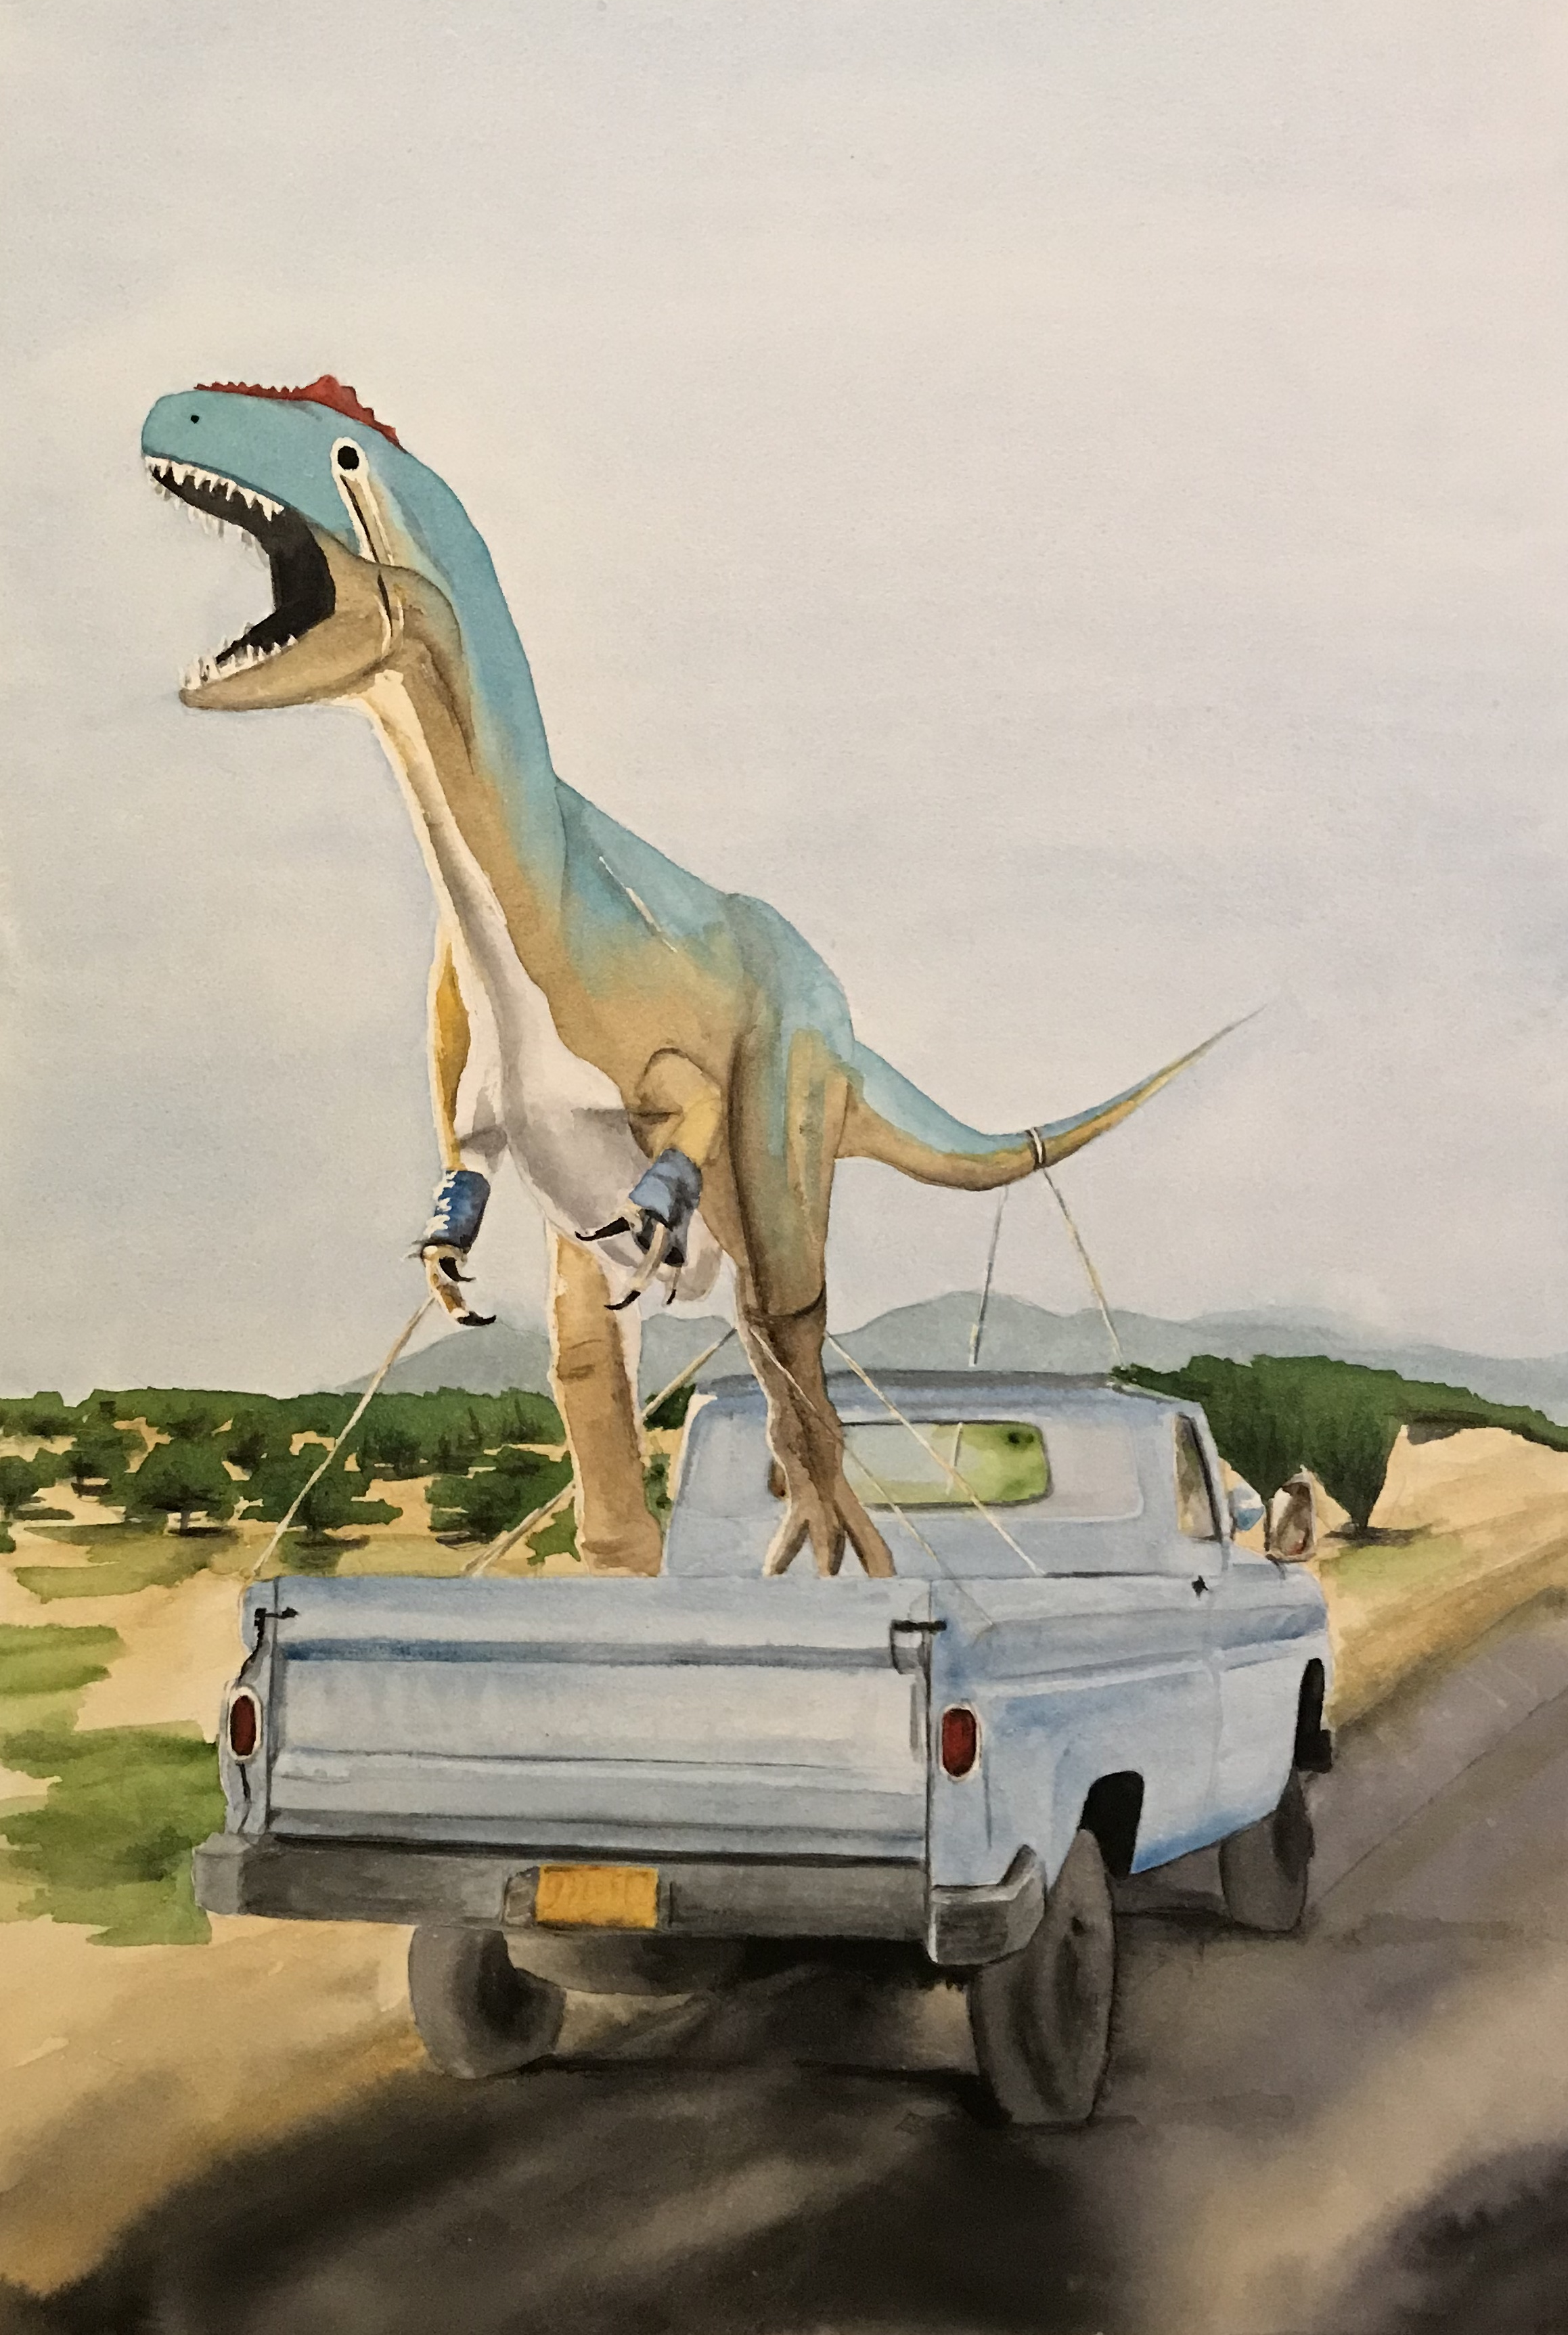 "Tyrannosaurus Ex. 14ish"" x 20ish"" watercolor on paper."